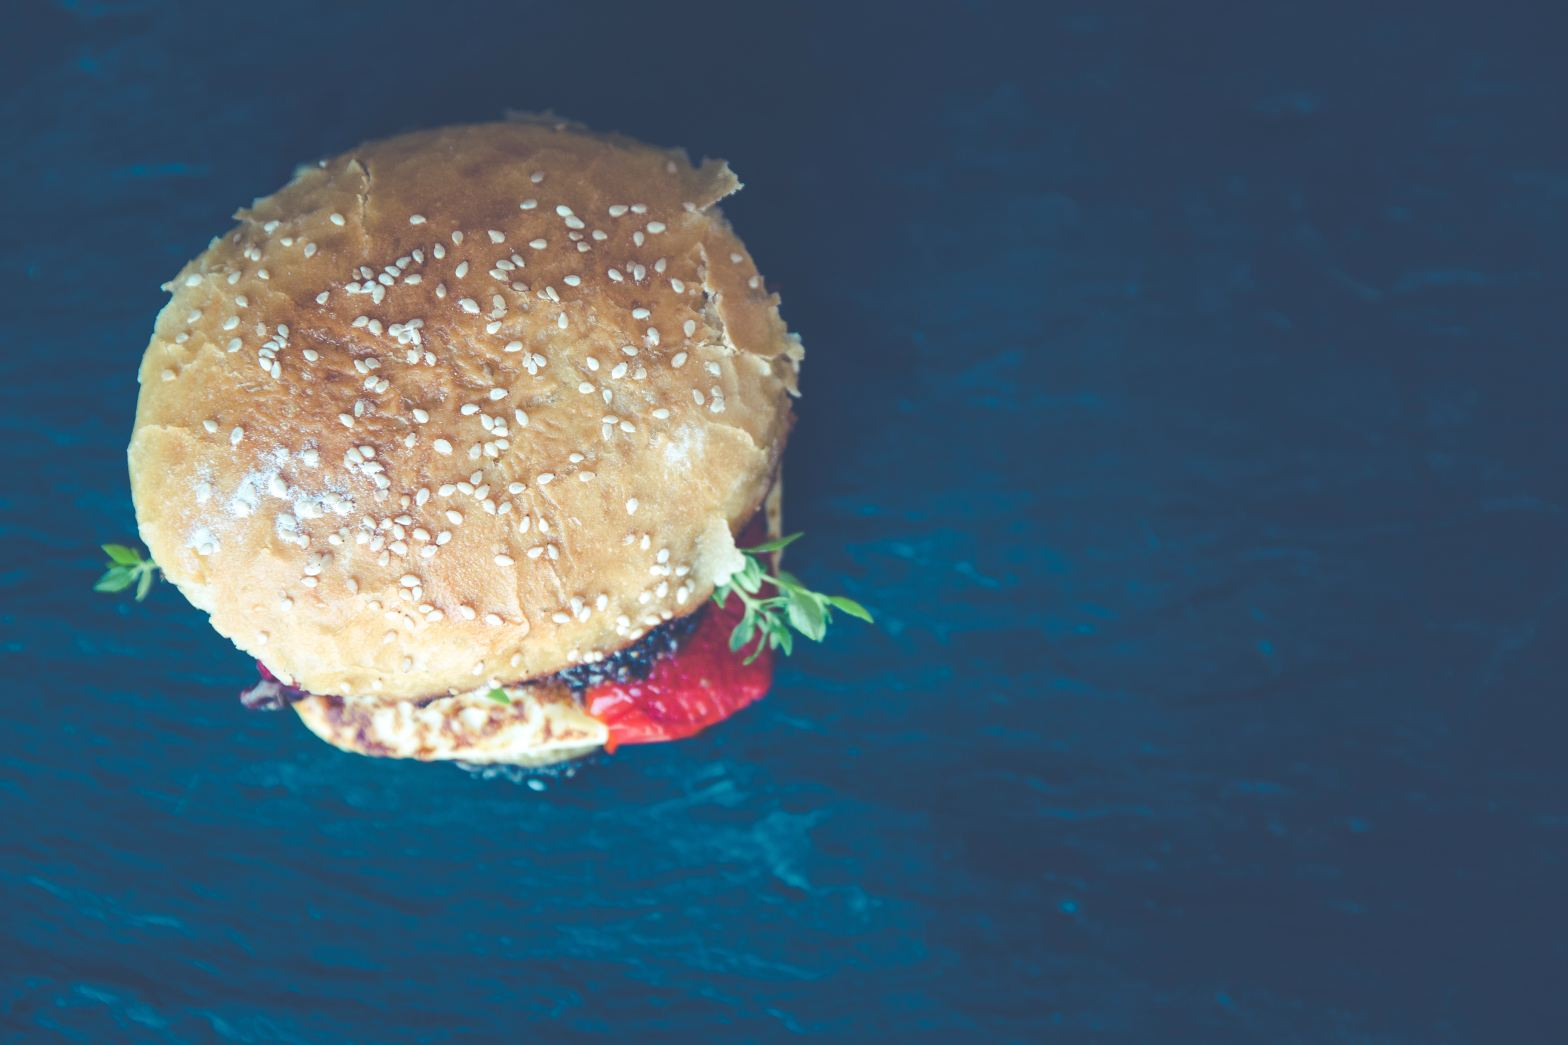 Arial shot of hamburger on a dark background